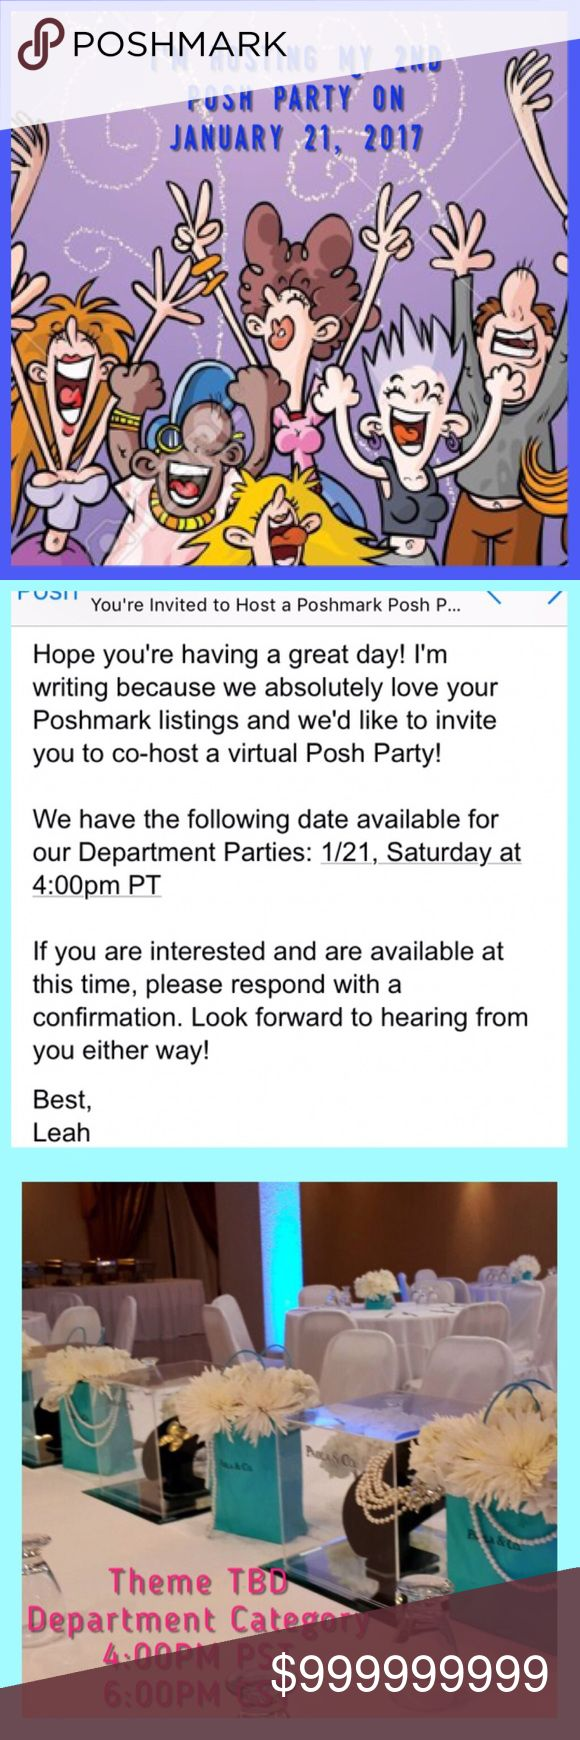 I'm Hosting My 2nd Posh Party with @heatherkzac !! I'm co-hosting a party on January 21. Theme will be Everything Plus Size! Let me know if you have any listings in that category. The after party will turn this into a follow game so stay on board if you want to play! Other